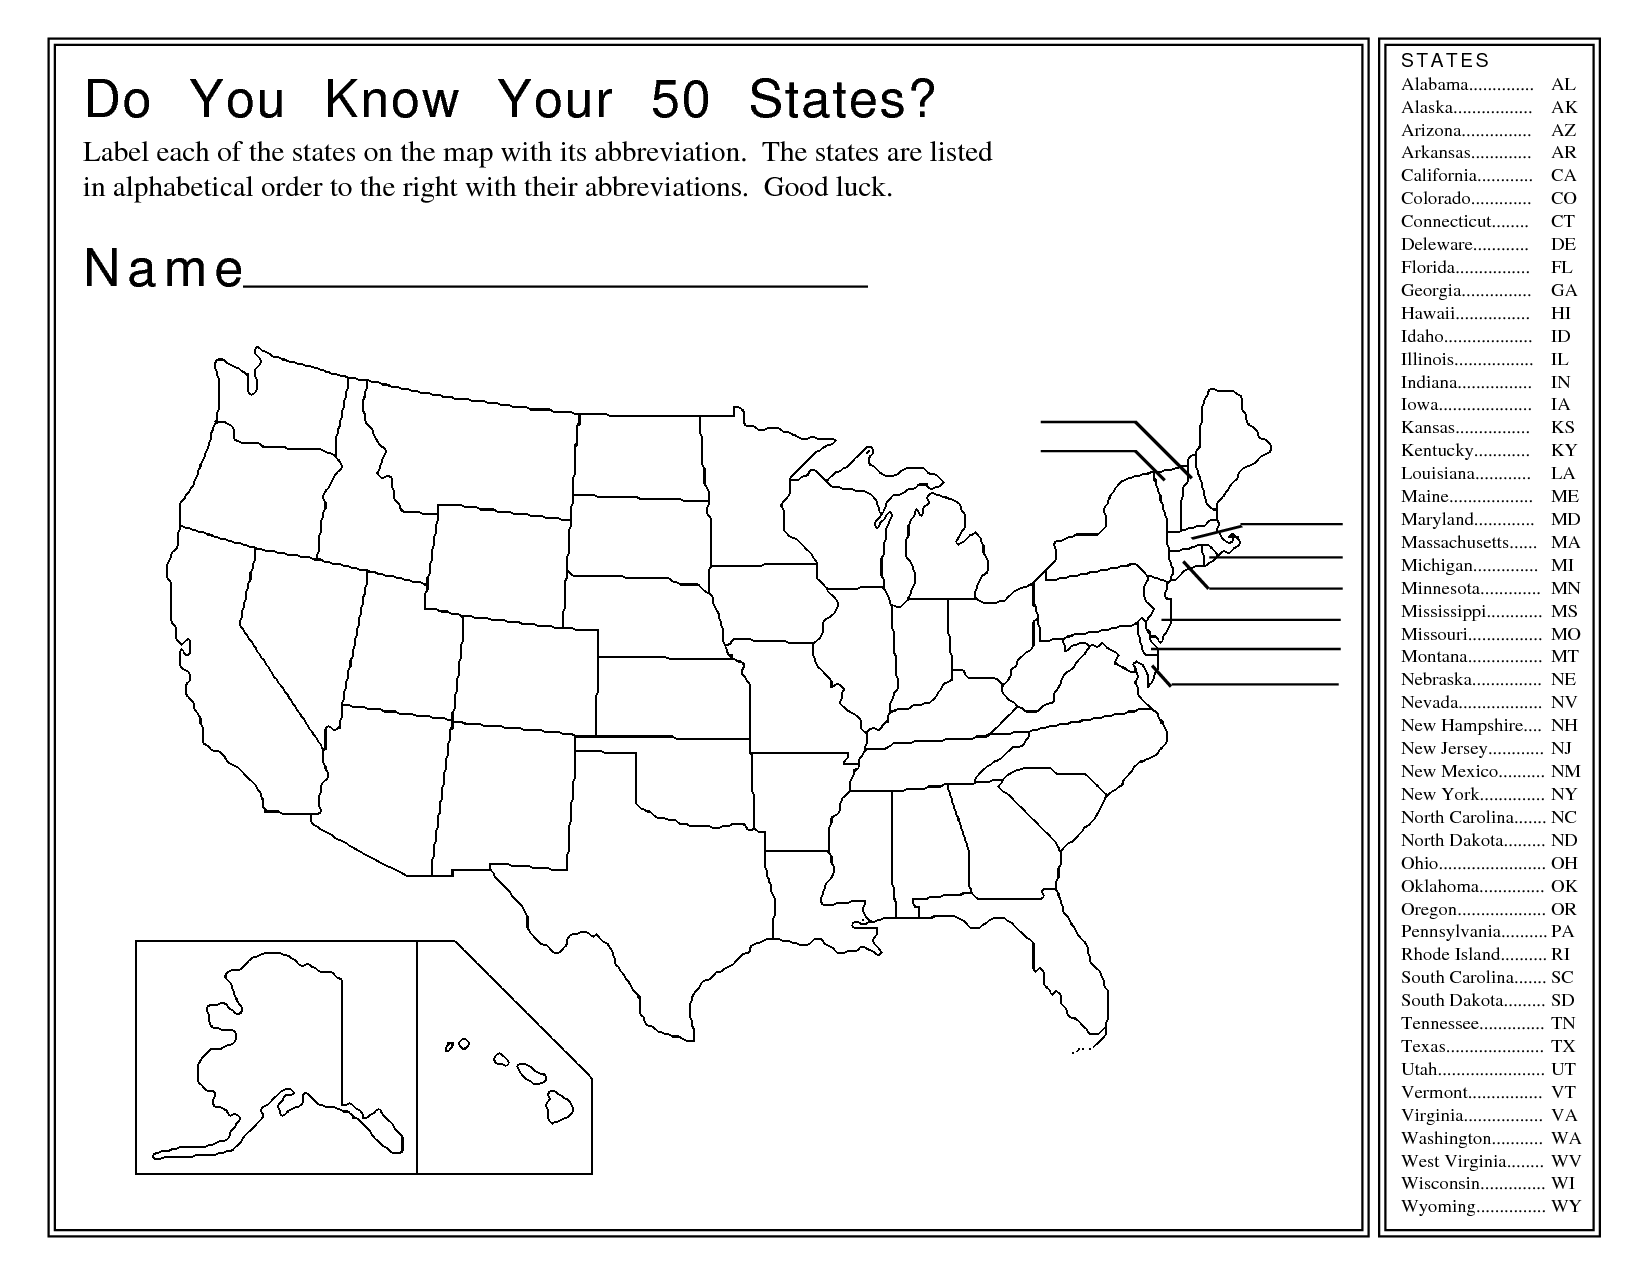 Printable Us Map With State Abbreviations - United states map with state names and abbreviations